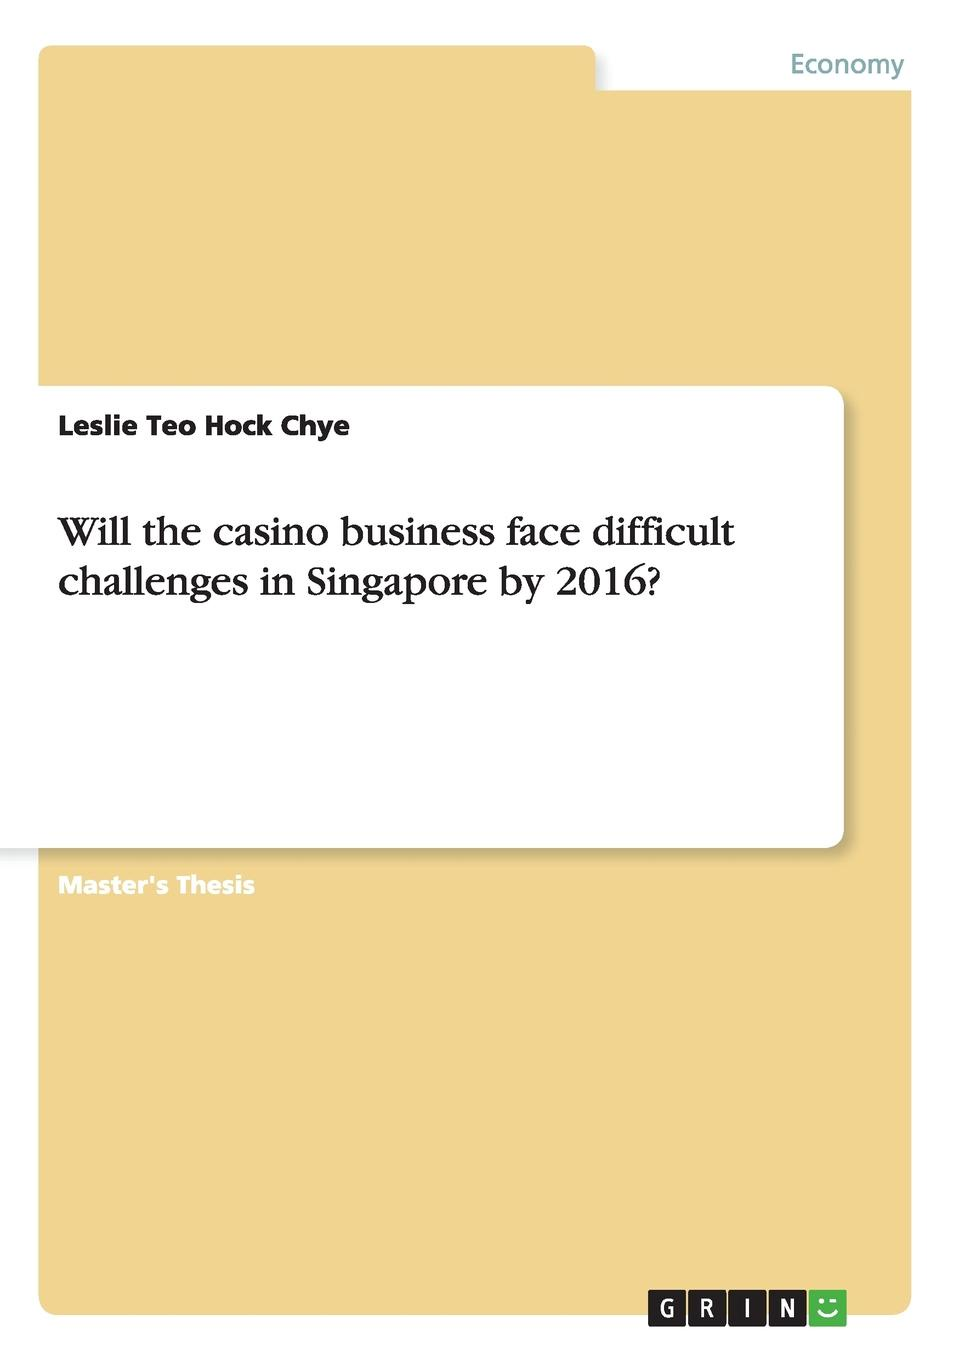 Leslie Teo Hock Chye Will the casino business face difficult challenges in Singapore by 2016. chance the rapper singapore